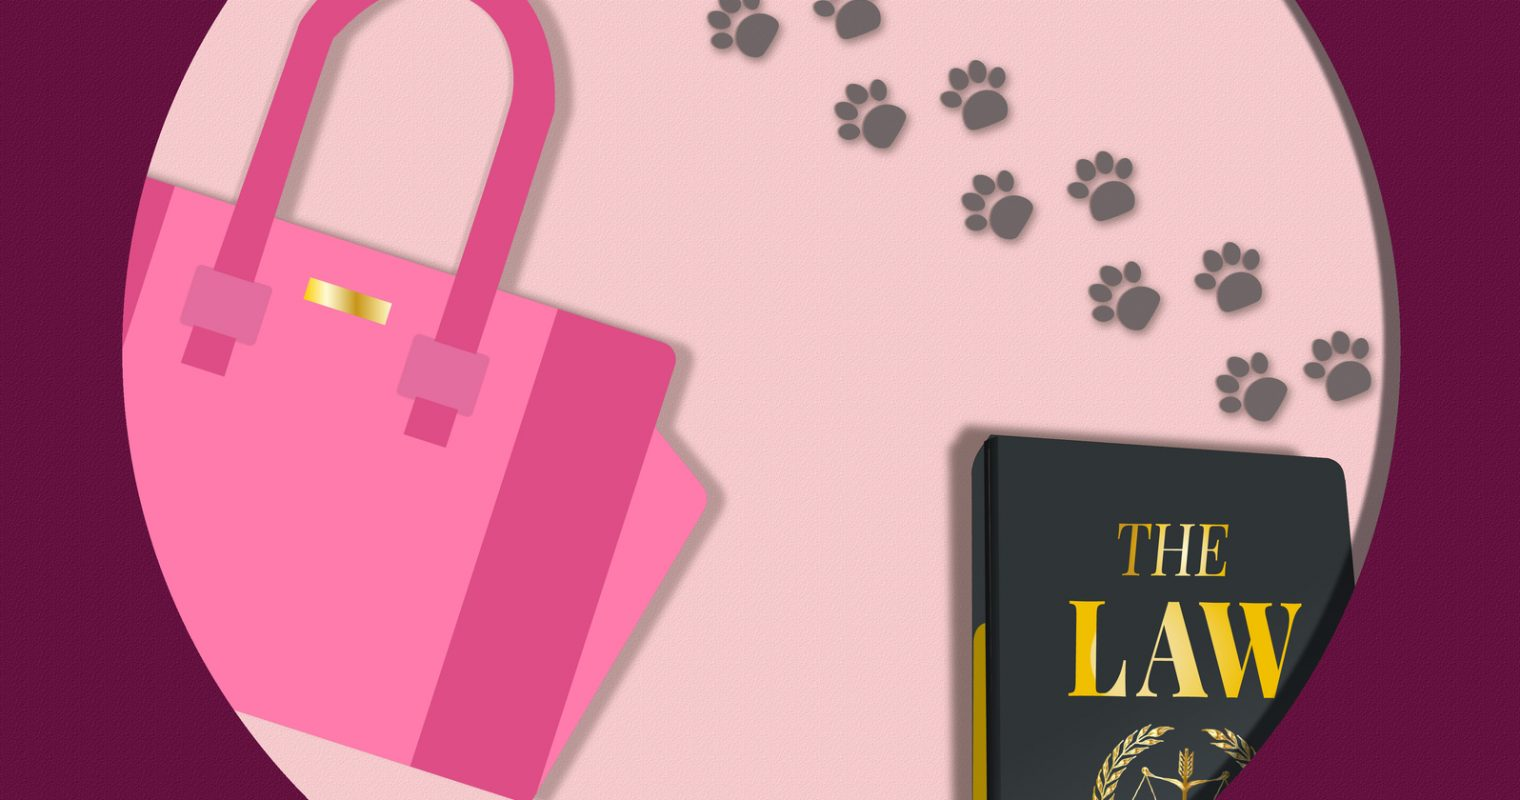 New Google Easter Egg For 20th Anniversary of Legally Blonde